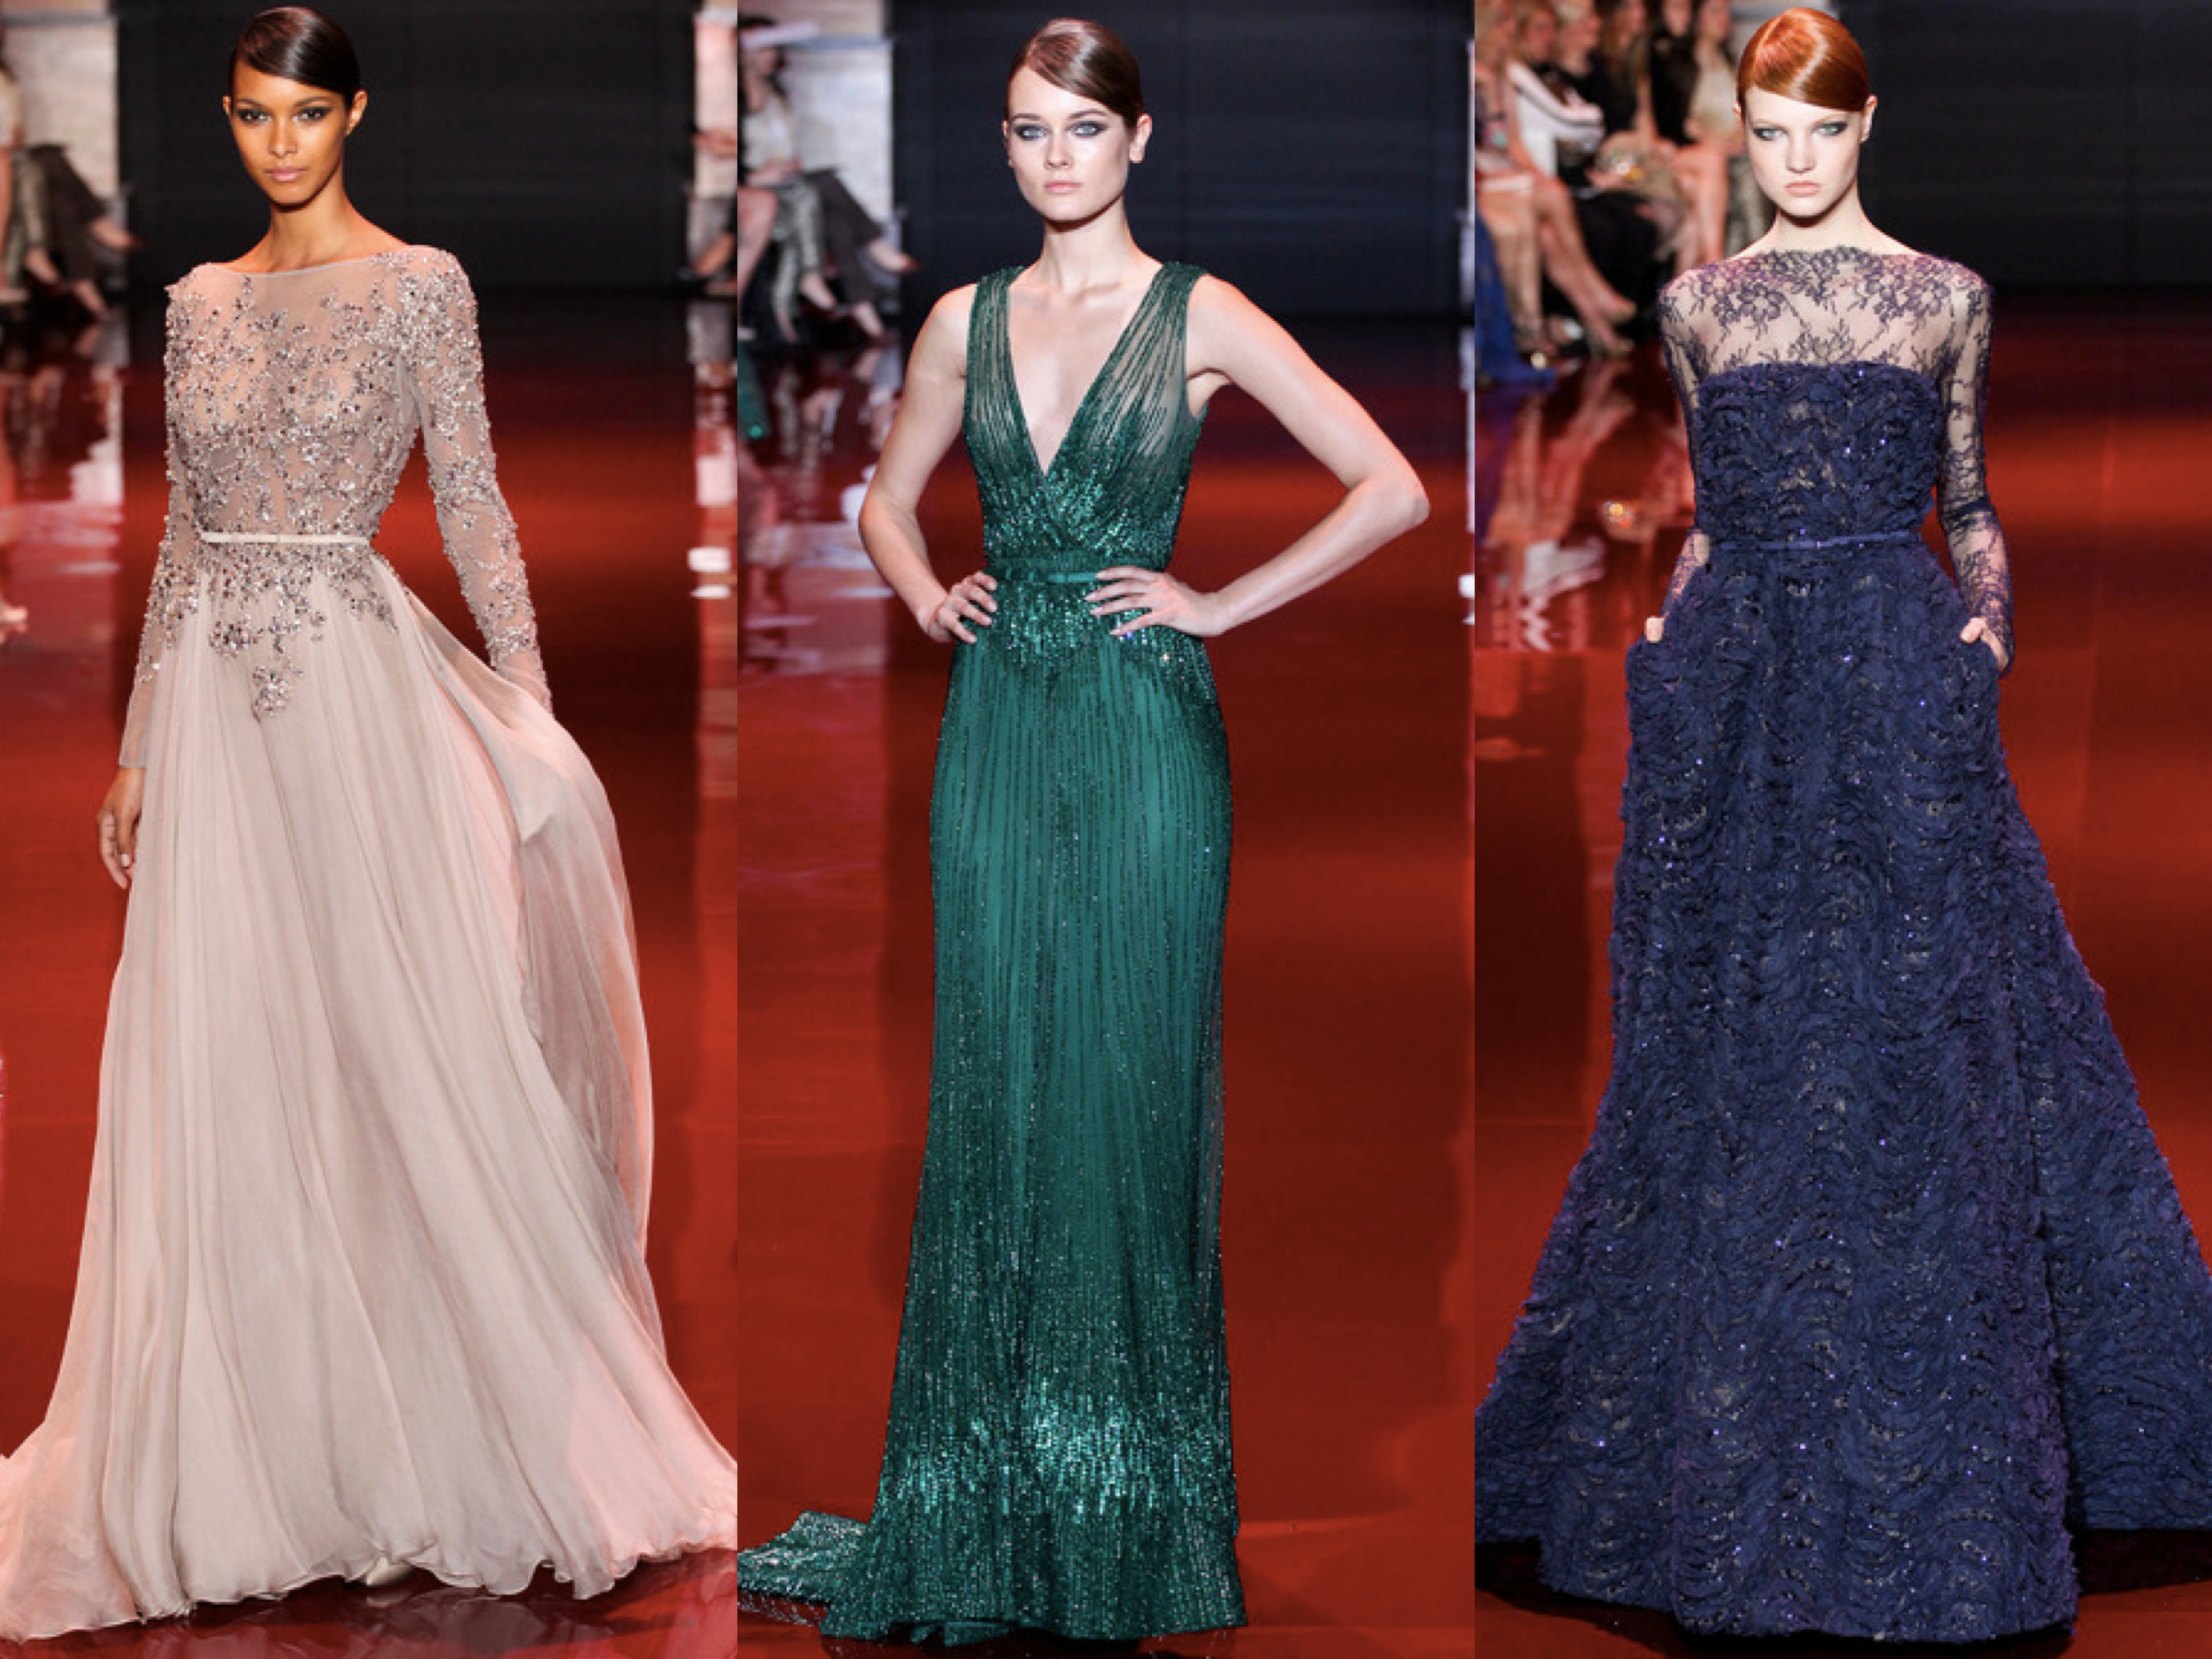 Elie Saab Fall Couture 2013 Collage